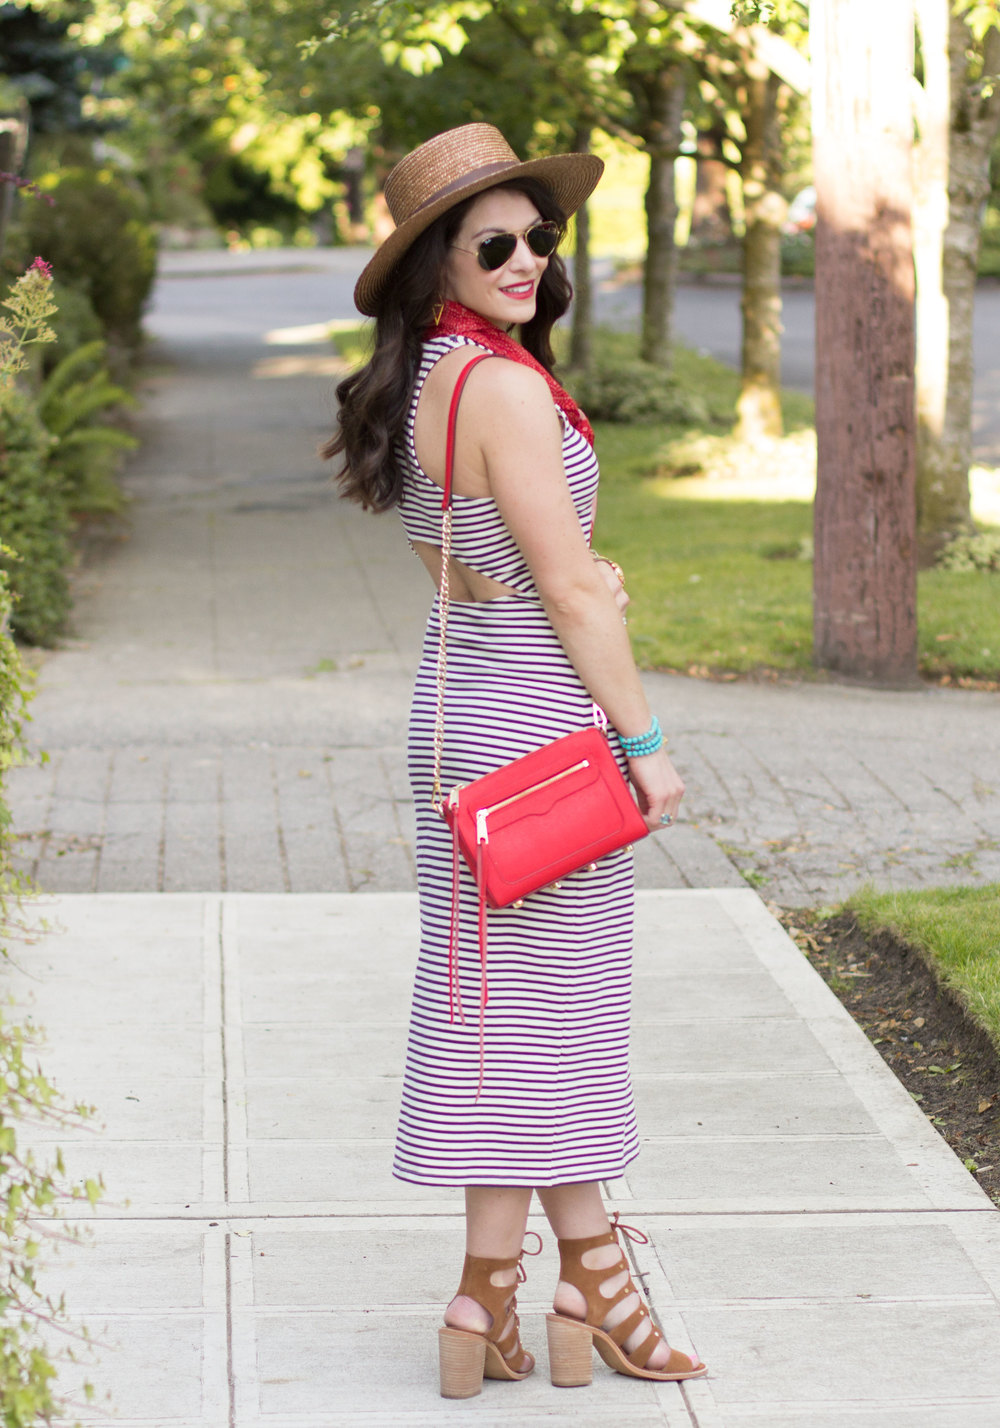 Cute July 4th Outfit Ideas, Roxy Ano Nuevo Dress, Striped Dress with Red Scarf, Dolce Vita Lyndon Sandals, Boater Hat, Rebecca Minkoff Avery Crossbody Bag, Stripe Maxi Dress with Open Back